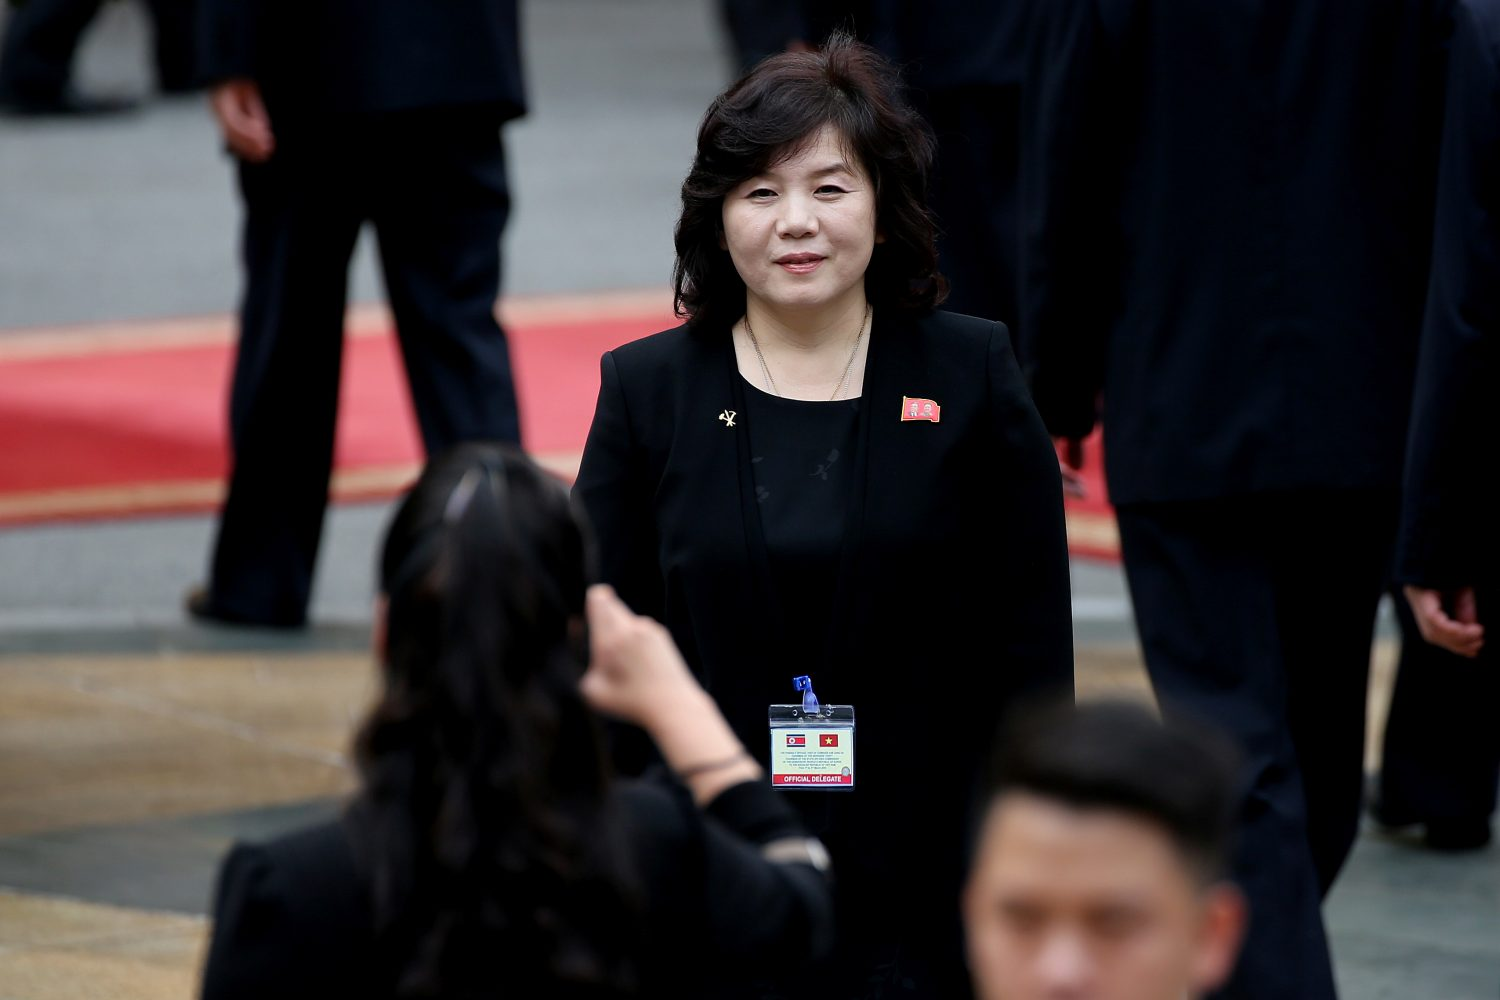 FILE PHOTO: Hyon Song Wol, head of the North Korean Samjiyon art troupe takes a photo of Vice Minister of Foreign Affairs Choe Son-Hui (C) ahead of the welcoming ceremony of North Korea's leader Kim Jong Un (not pictured) at the Presidential Palace in Hanoi, Vietnam March 1, 2019. Luong Thai Linh/Pool via REUTERS